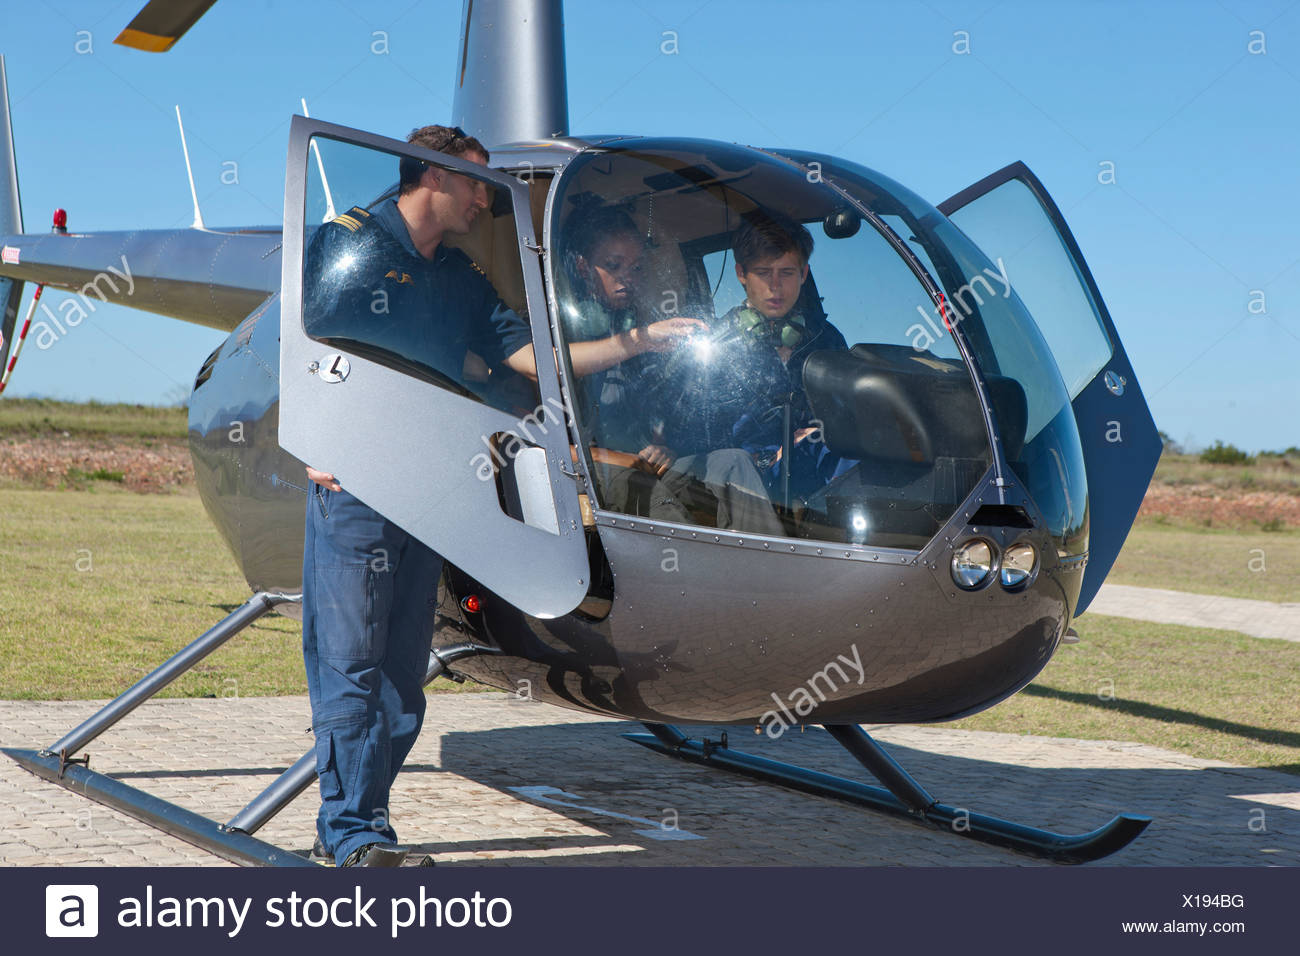 Flight instructor showing student pilots flight deck of helicopter - Stock Image